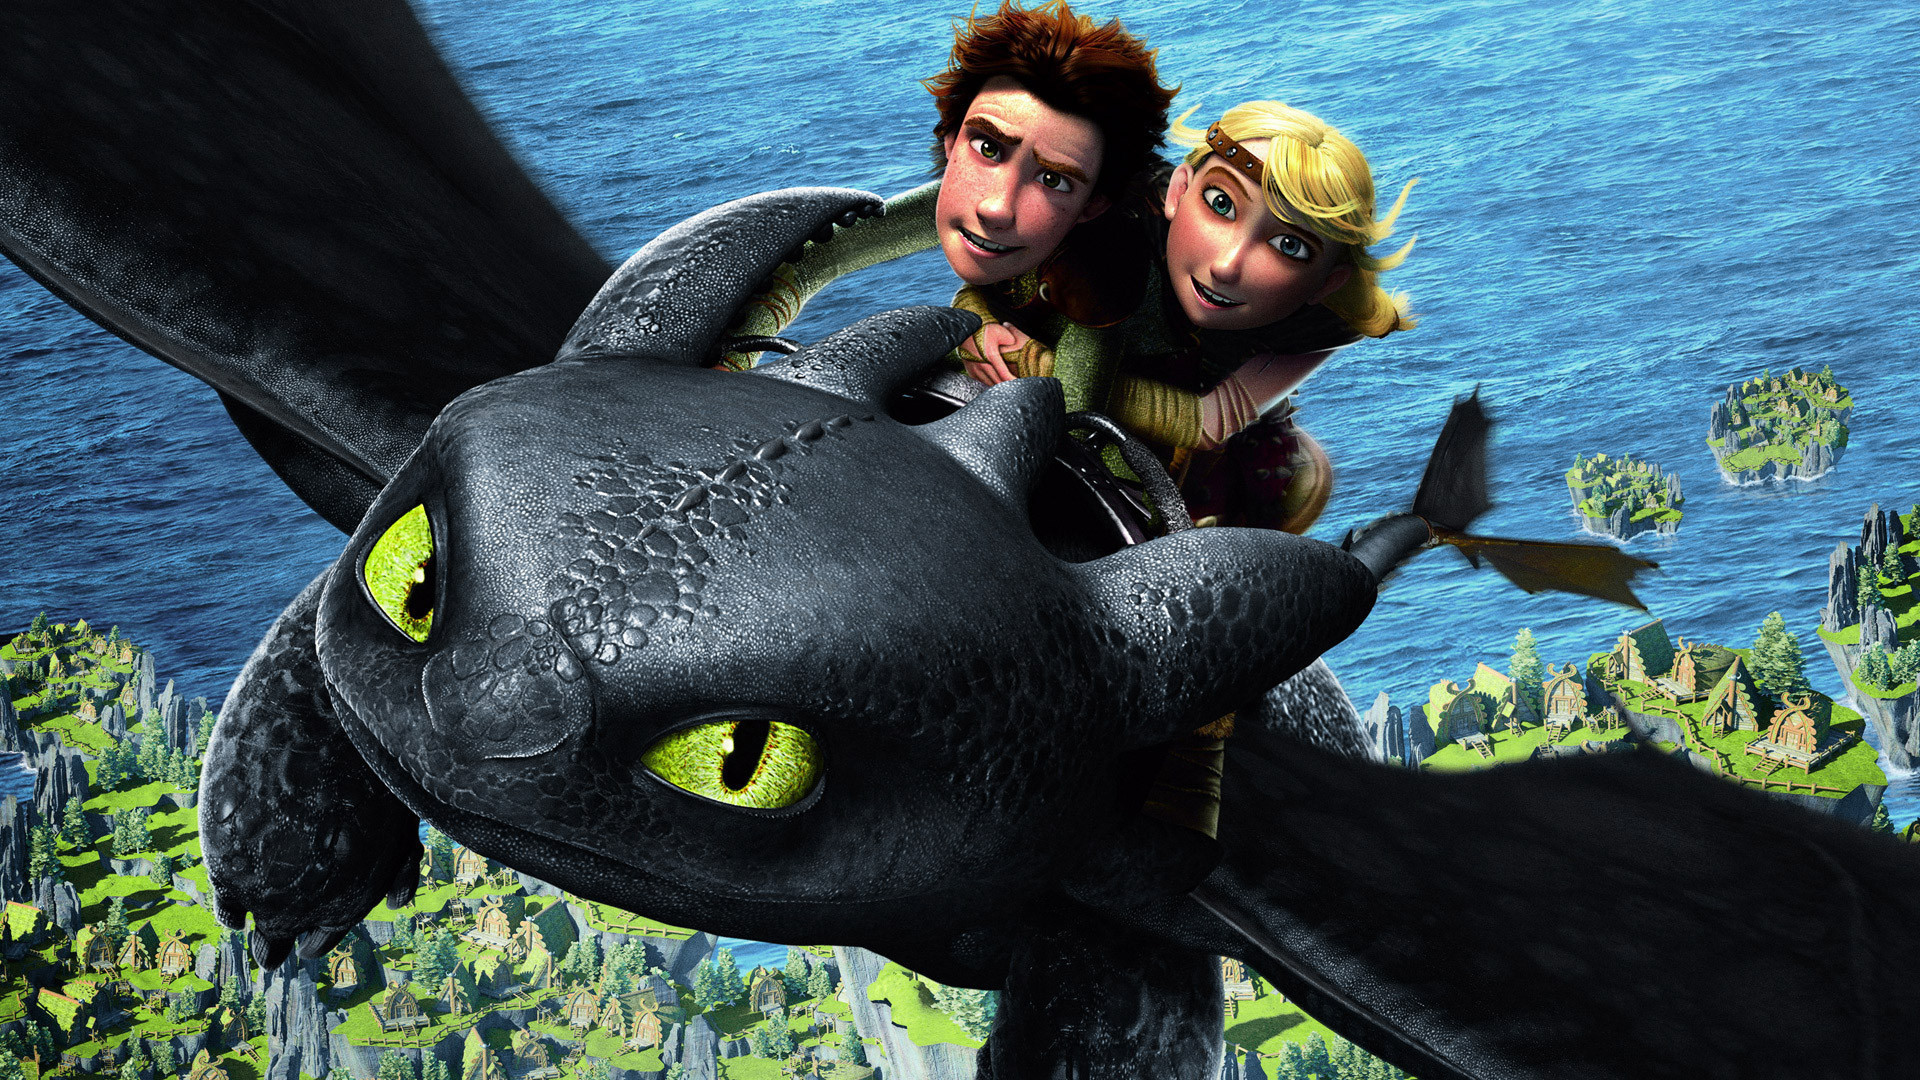 Toothless How To Train Your Dragon Wallpapers ID249433